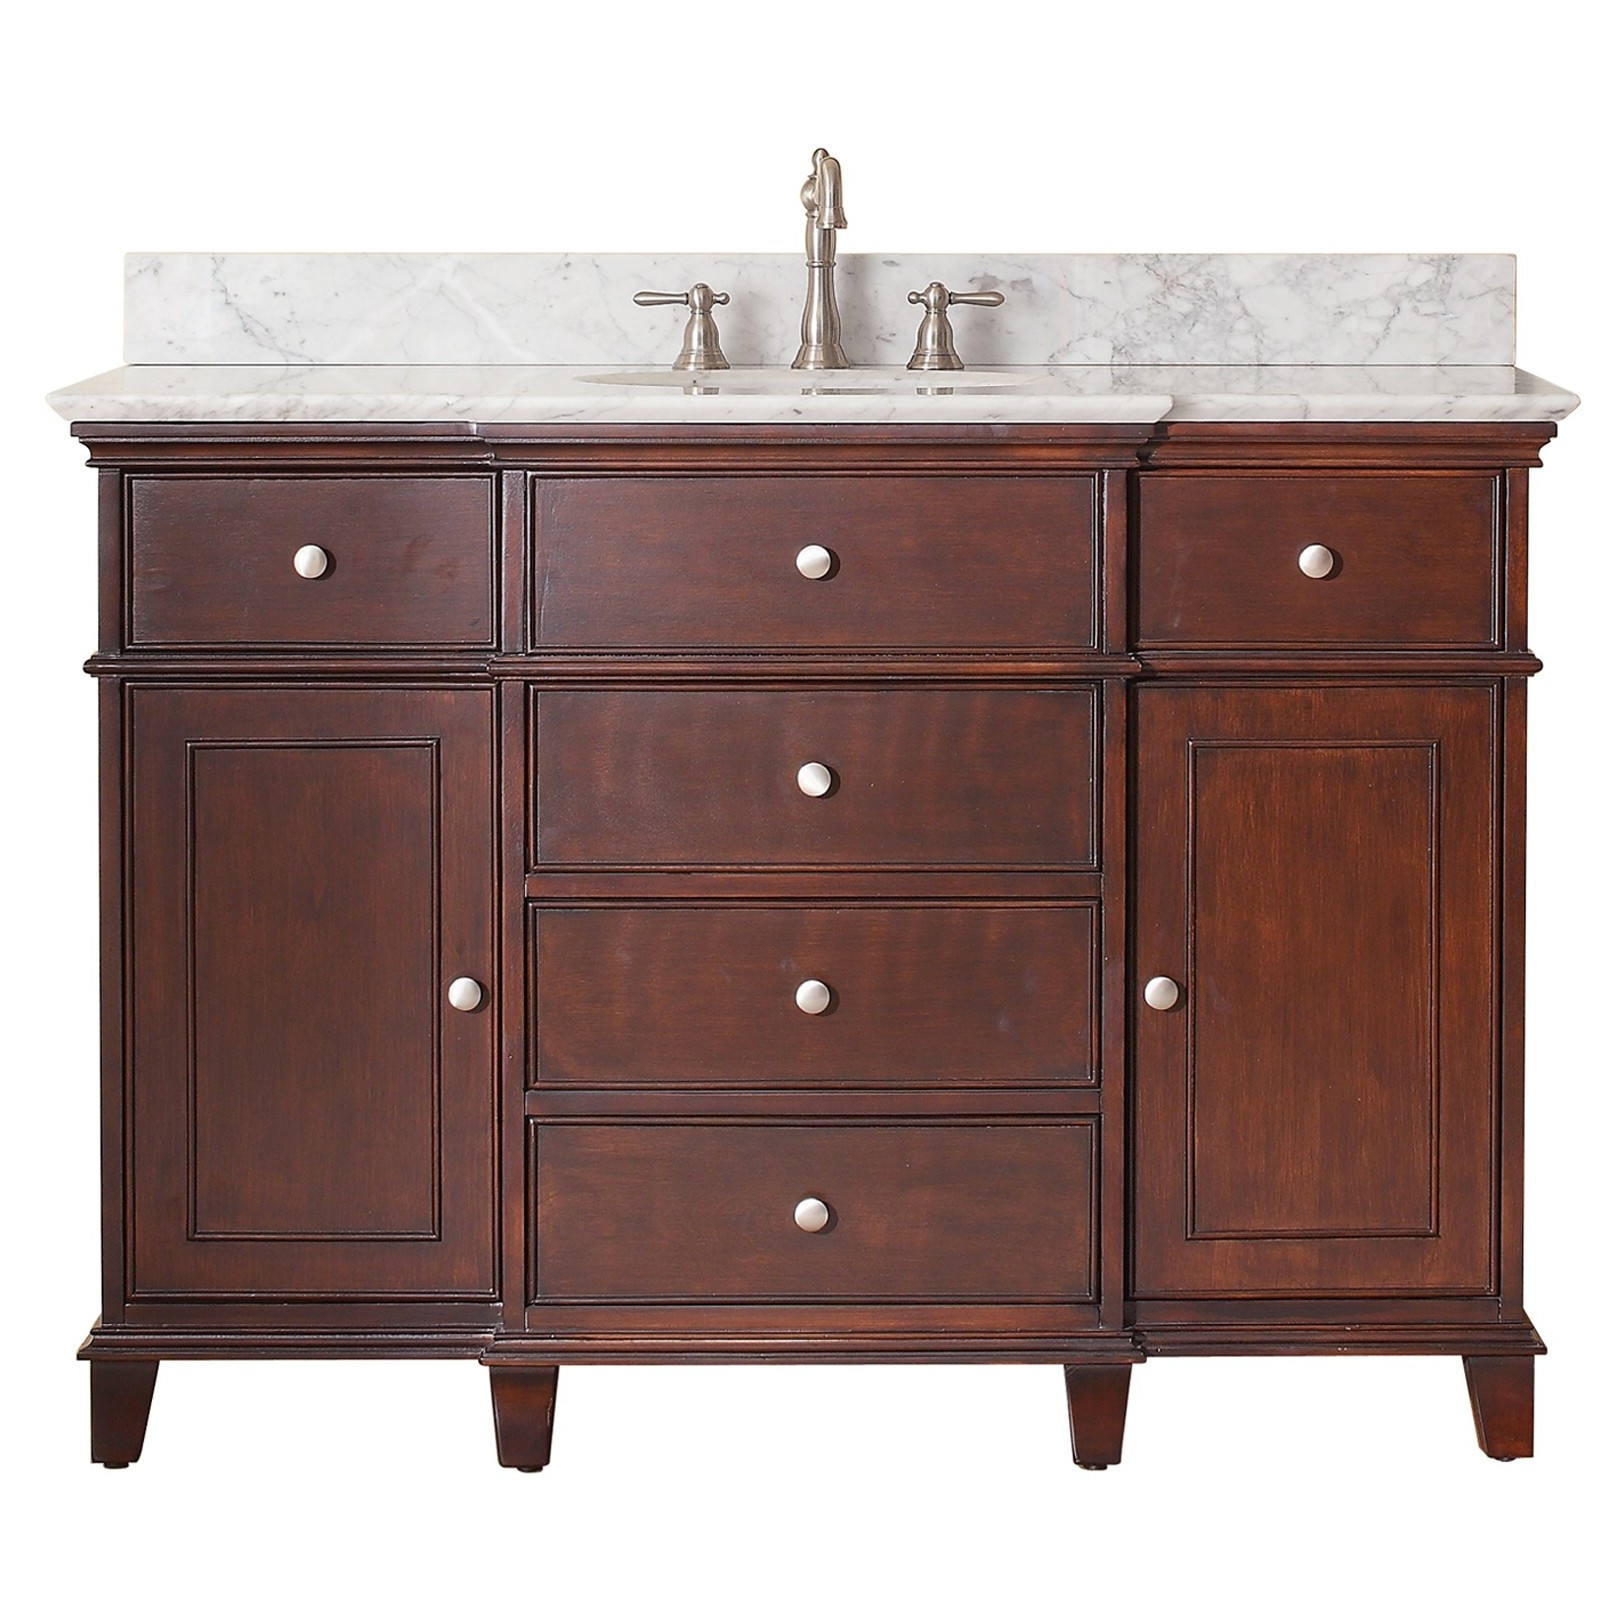 Best ideas about Cheap Bathroom Vanity . Save or Pin 28 Perfect Bathroom Vanities Cheap Now.